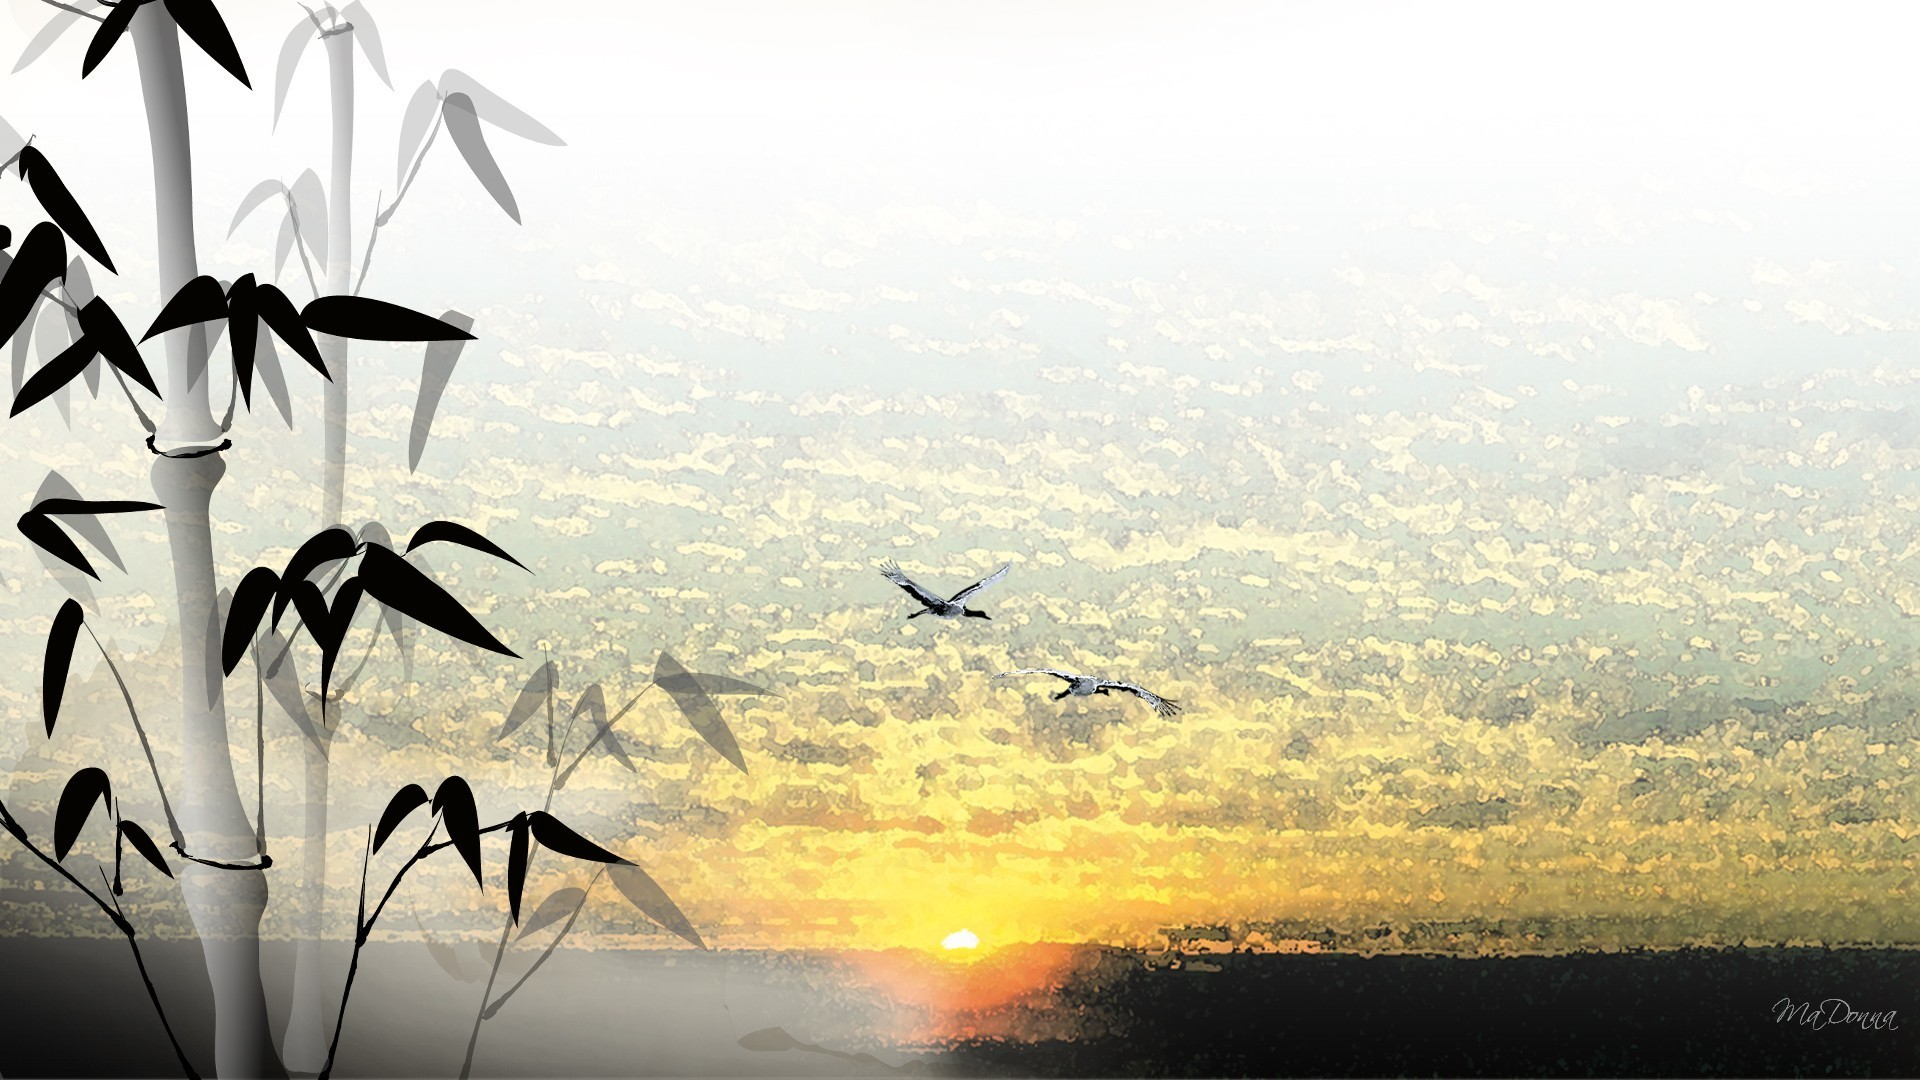 Res: 1920x1080, Photography - Oriental Wallpaper